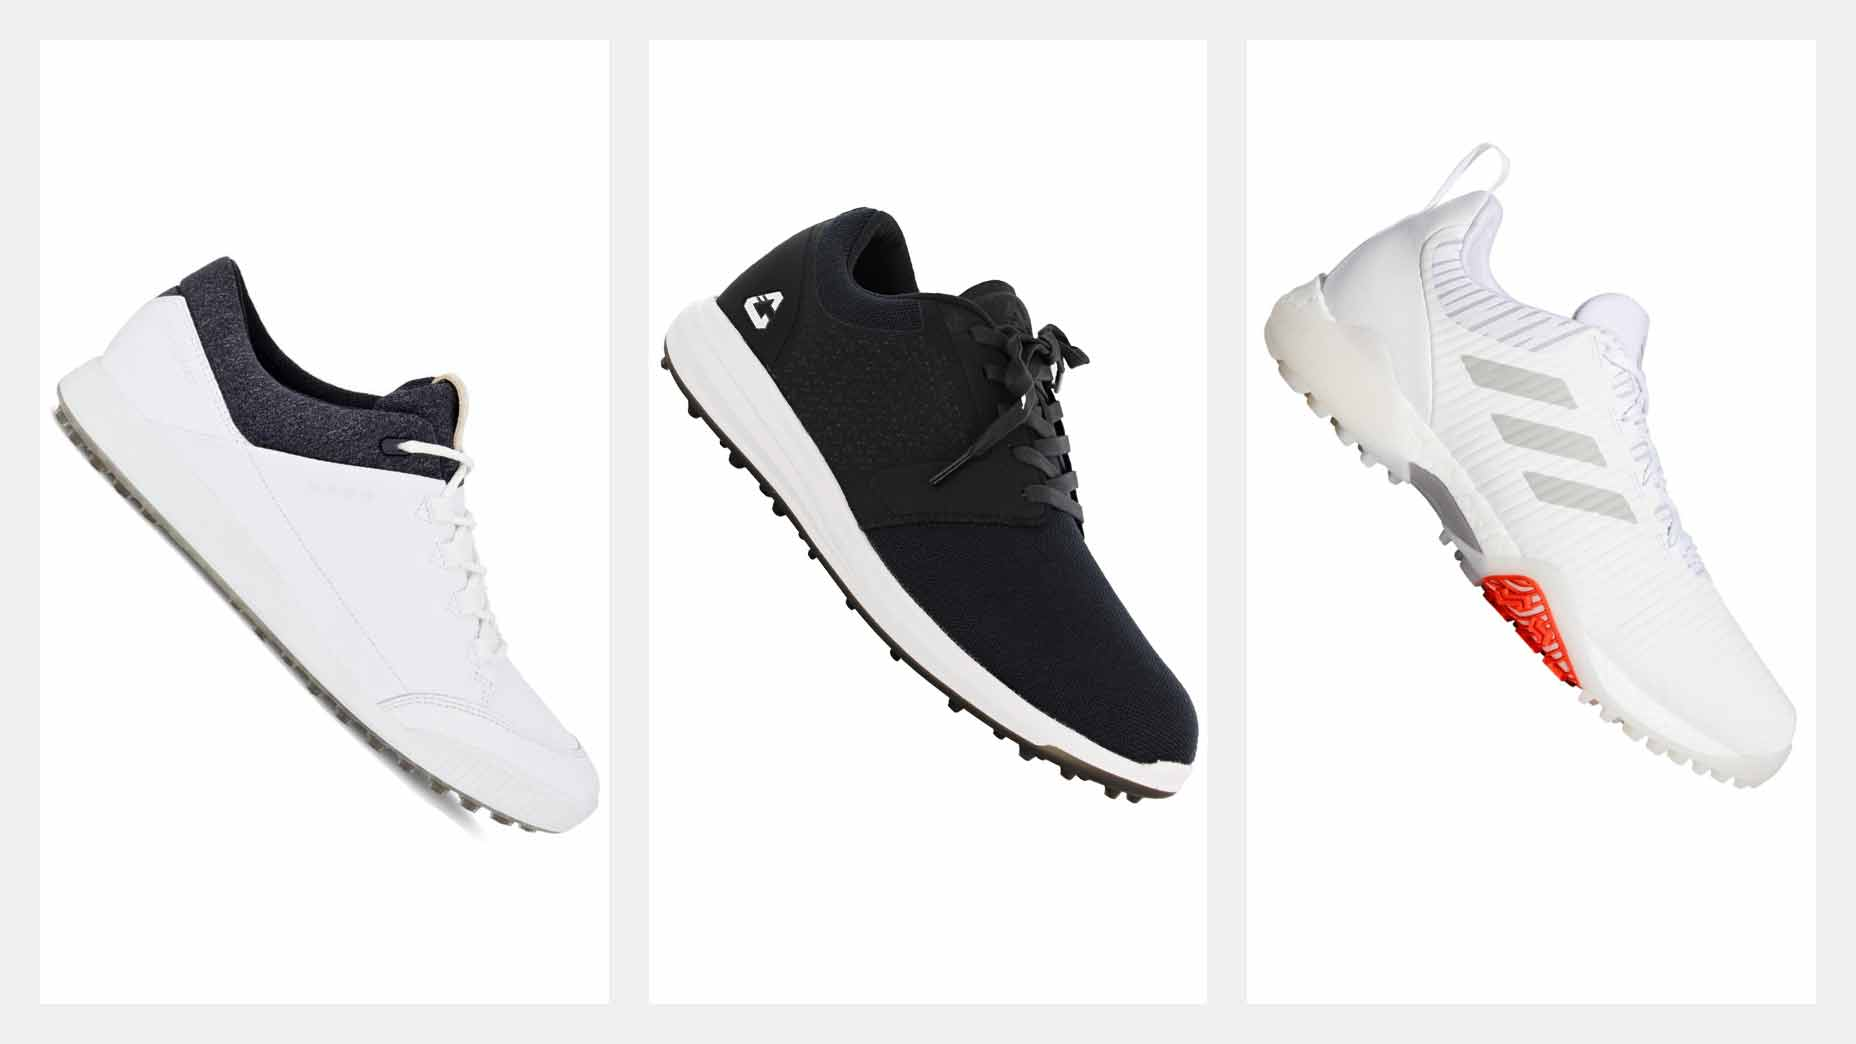 the best golf shoes for golfers